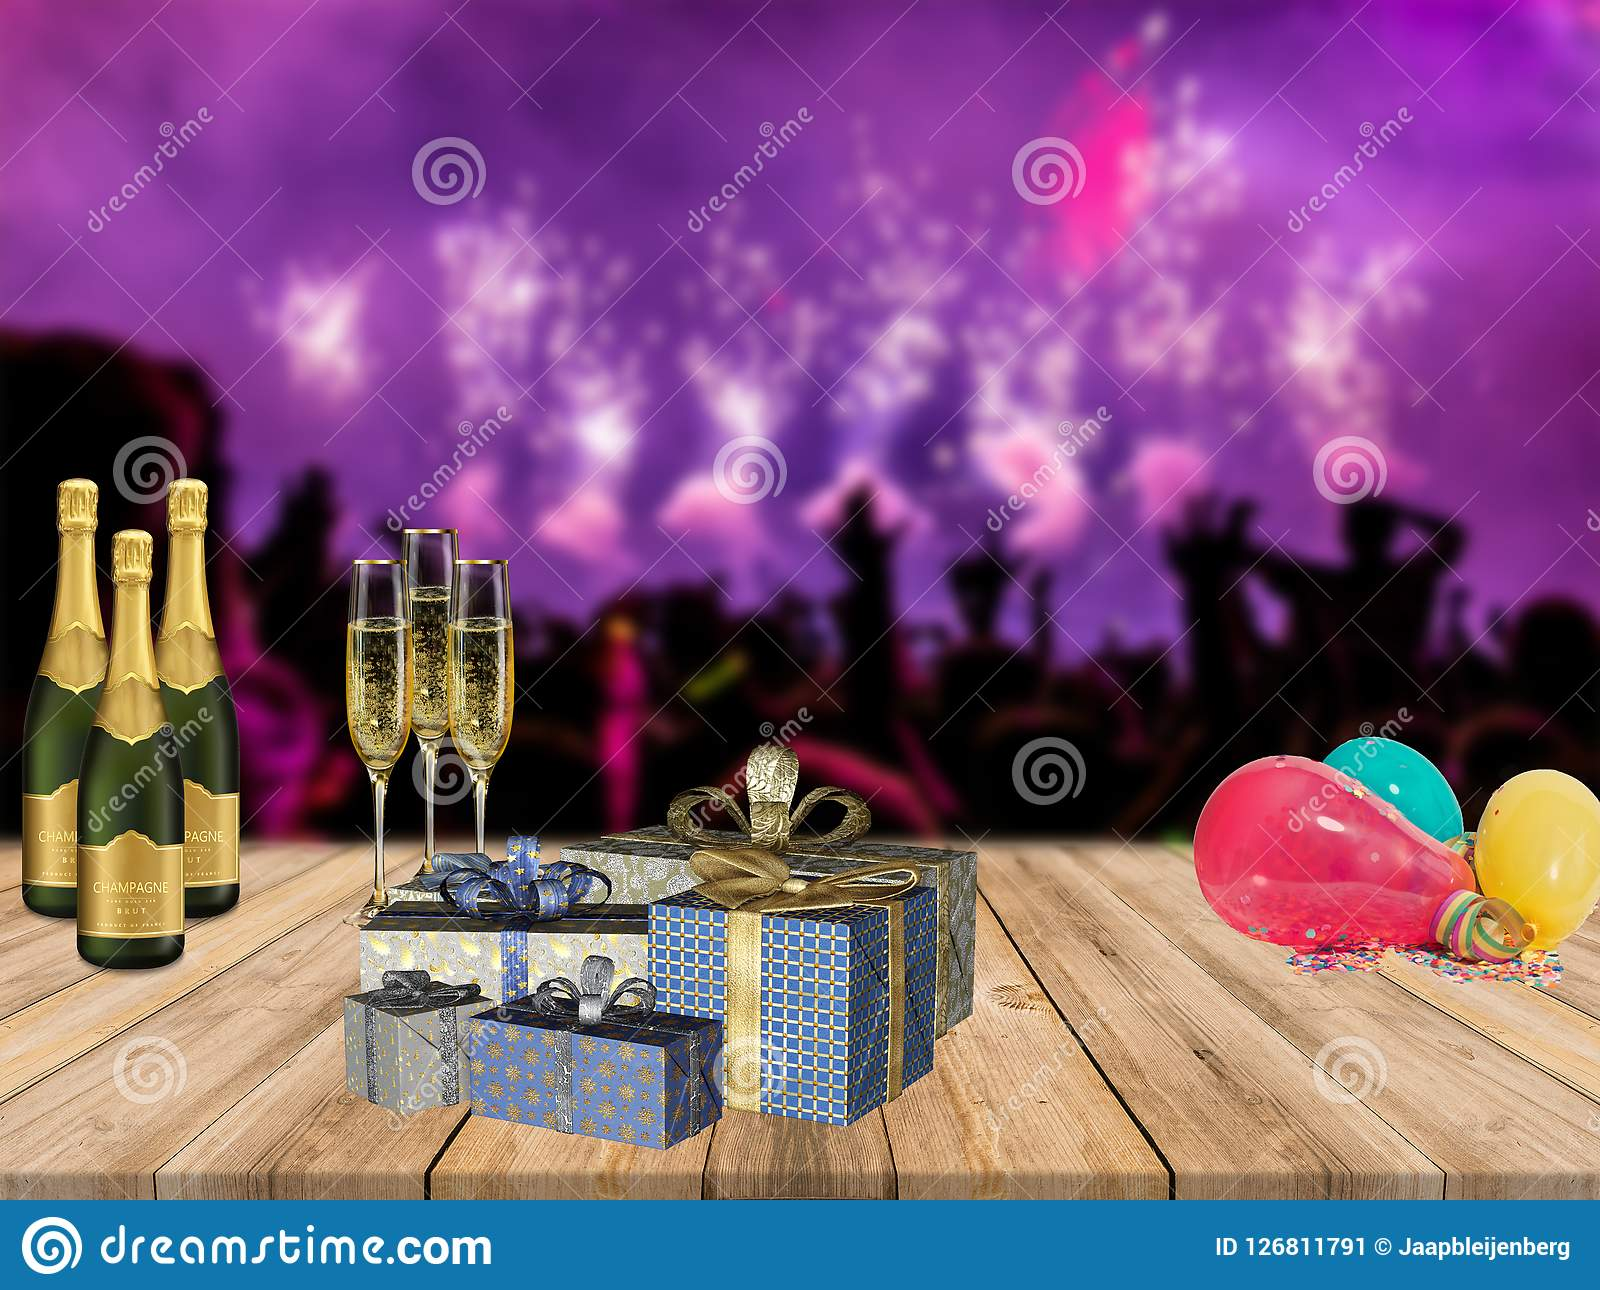 Happy new years party table with champagne presents and balloons with partying crowd and fireworks background